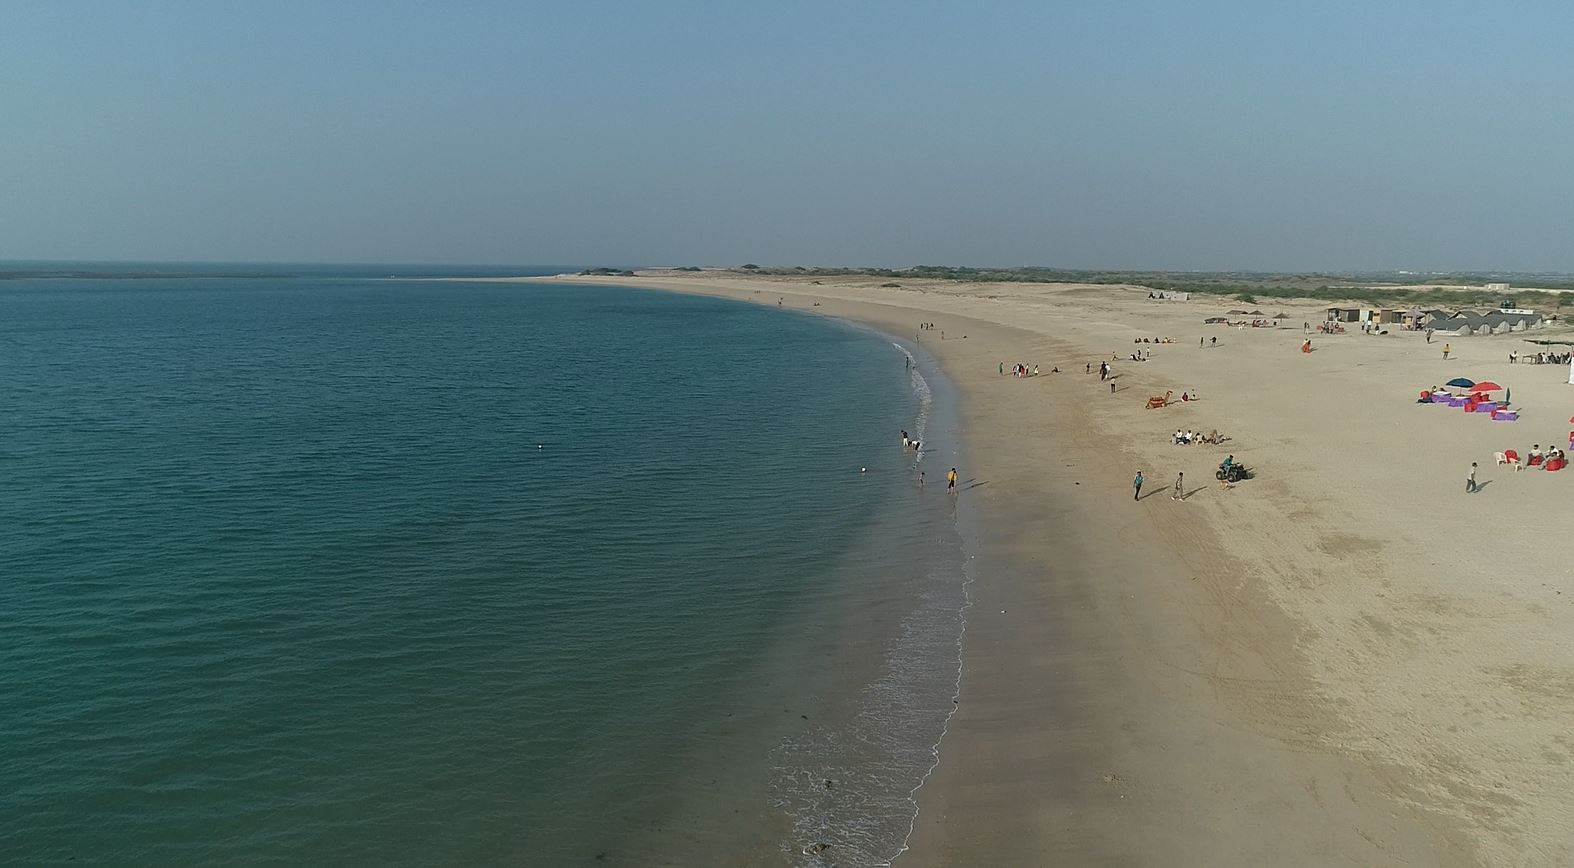 Rs. 20 crore tourist facility works to kick off at Shivrajpur Beach